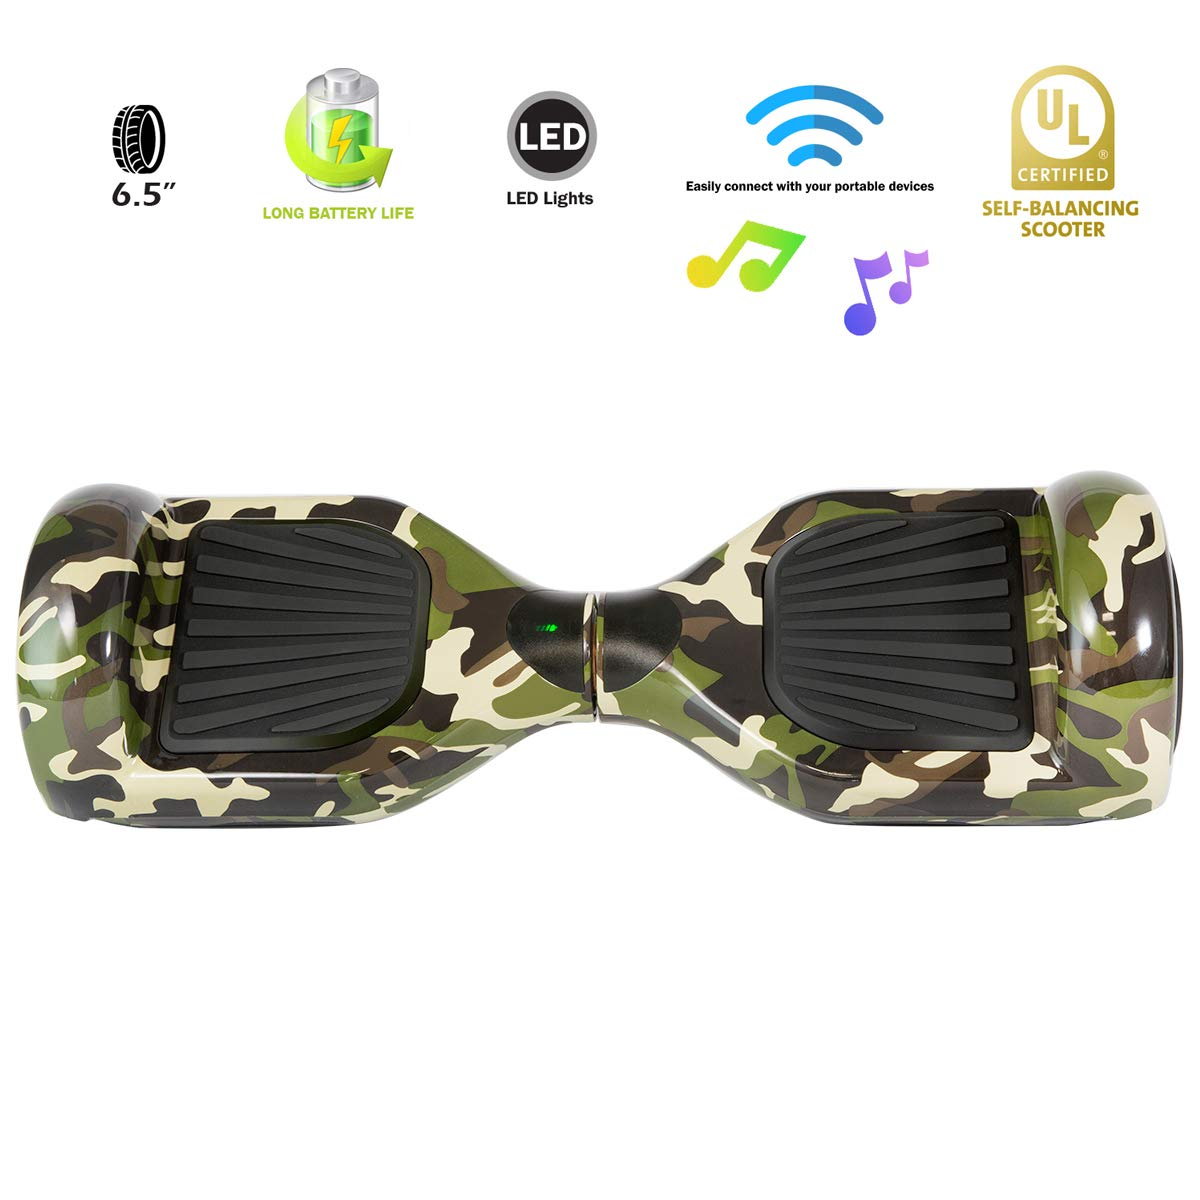 XPRIT Easter Sale Hoverboard w/Bluetooth Speaker (Camouflage) by XPRIT (Image #3)